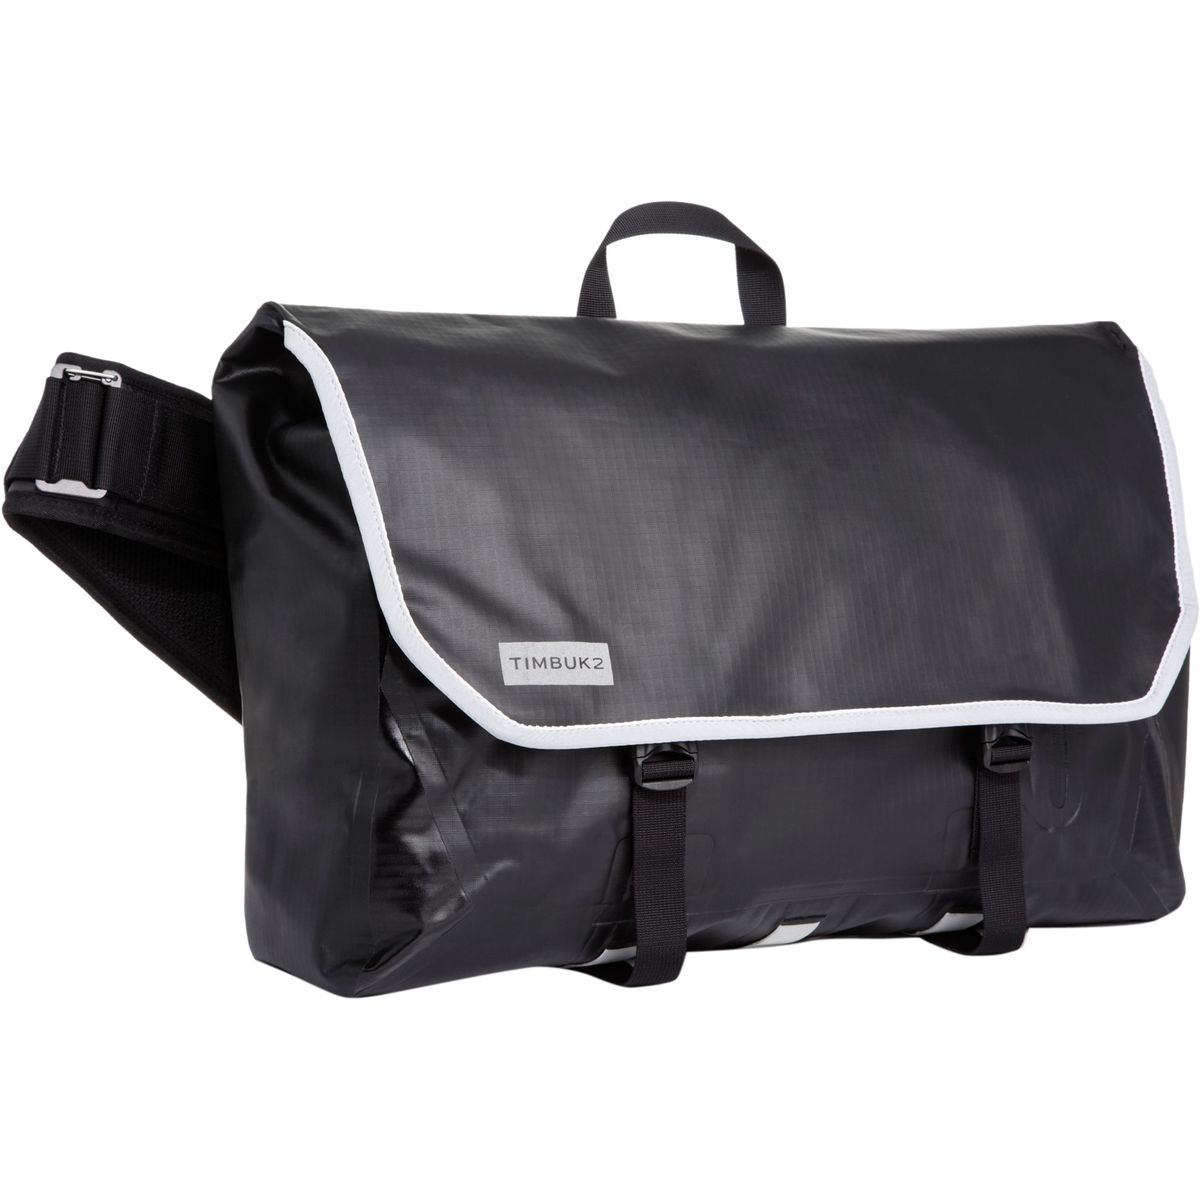 Timbuk2 Especial Primo Messenger | Competitive Cyclist